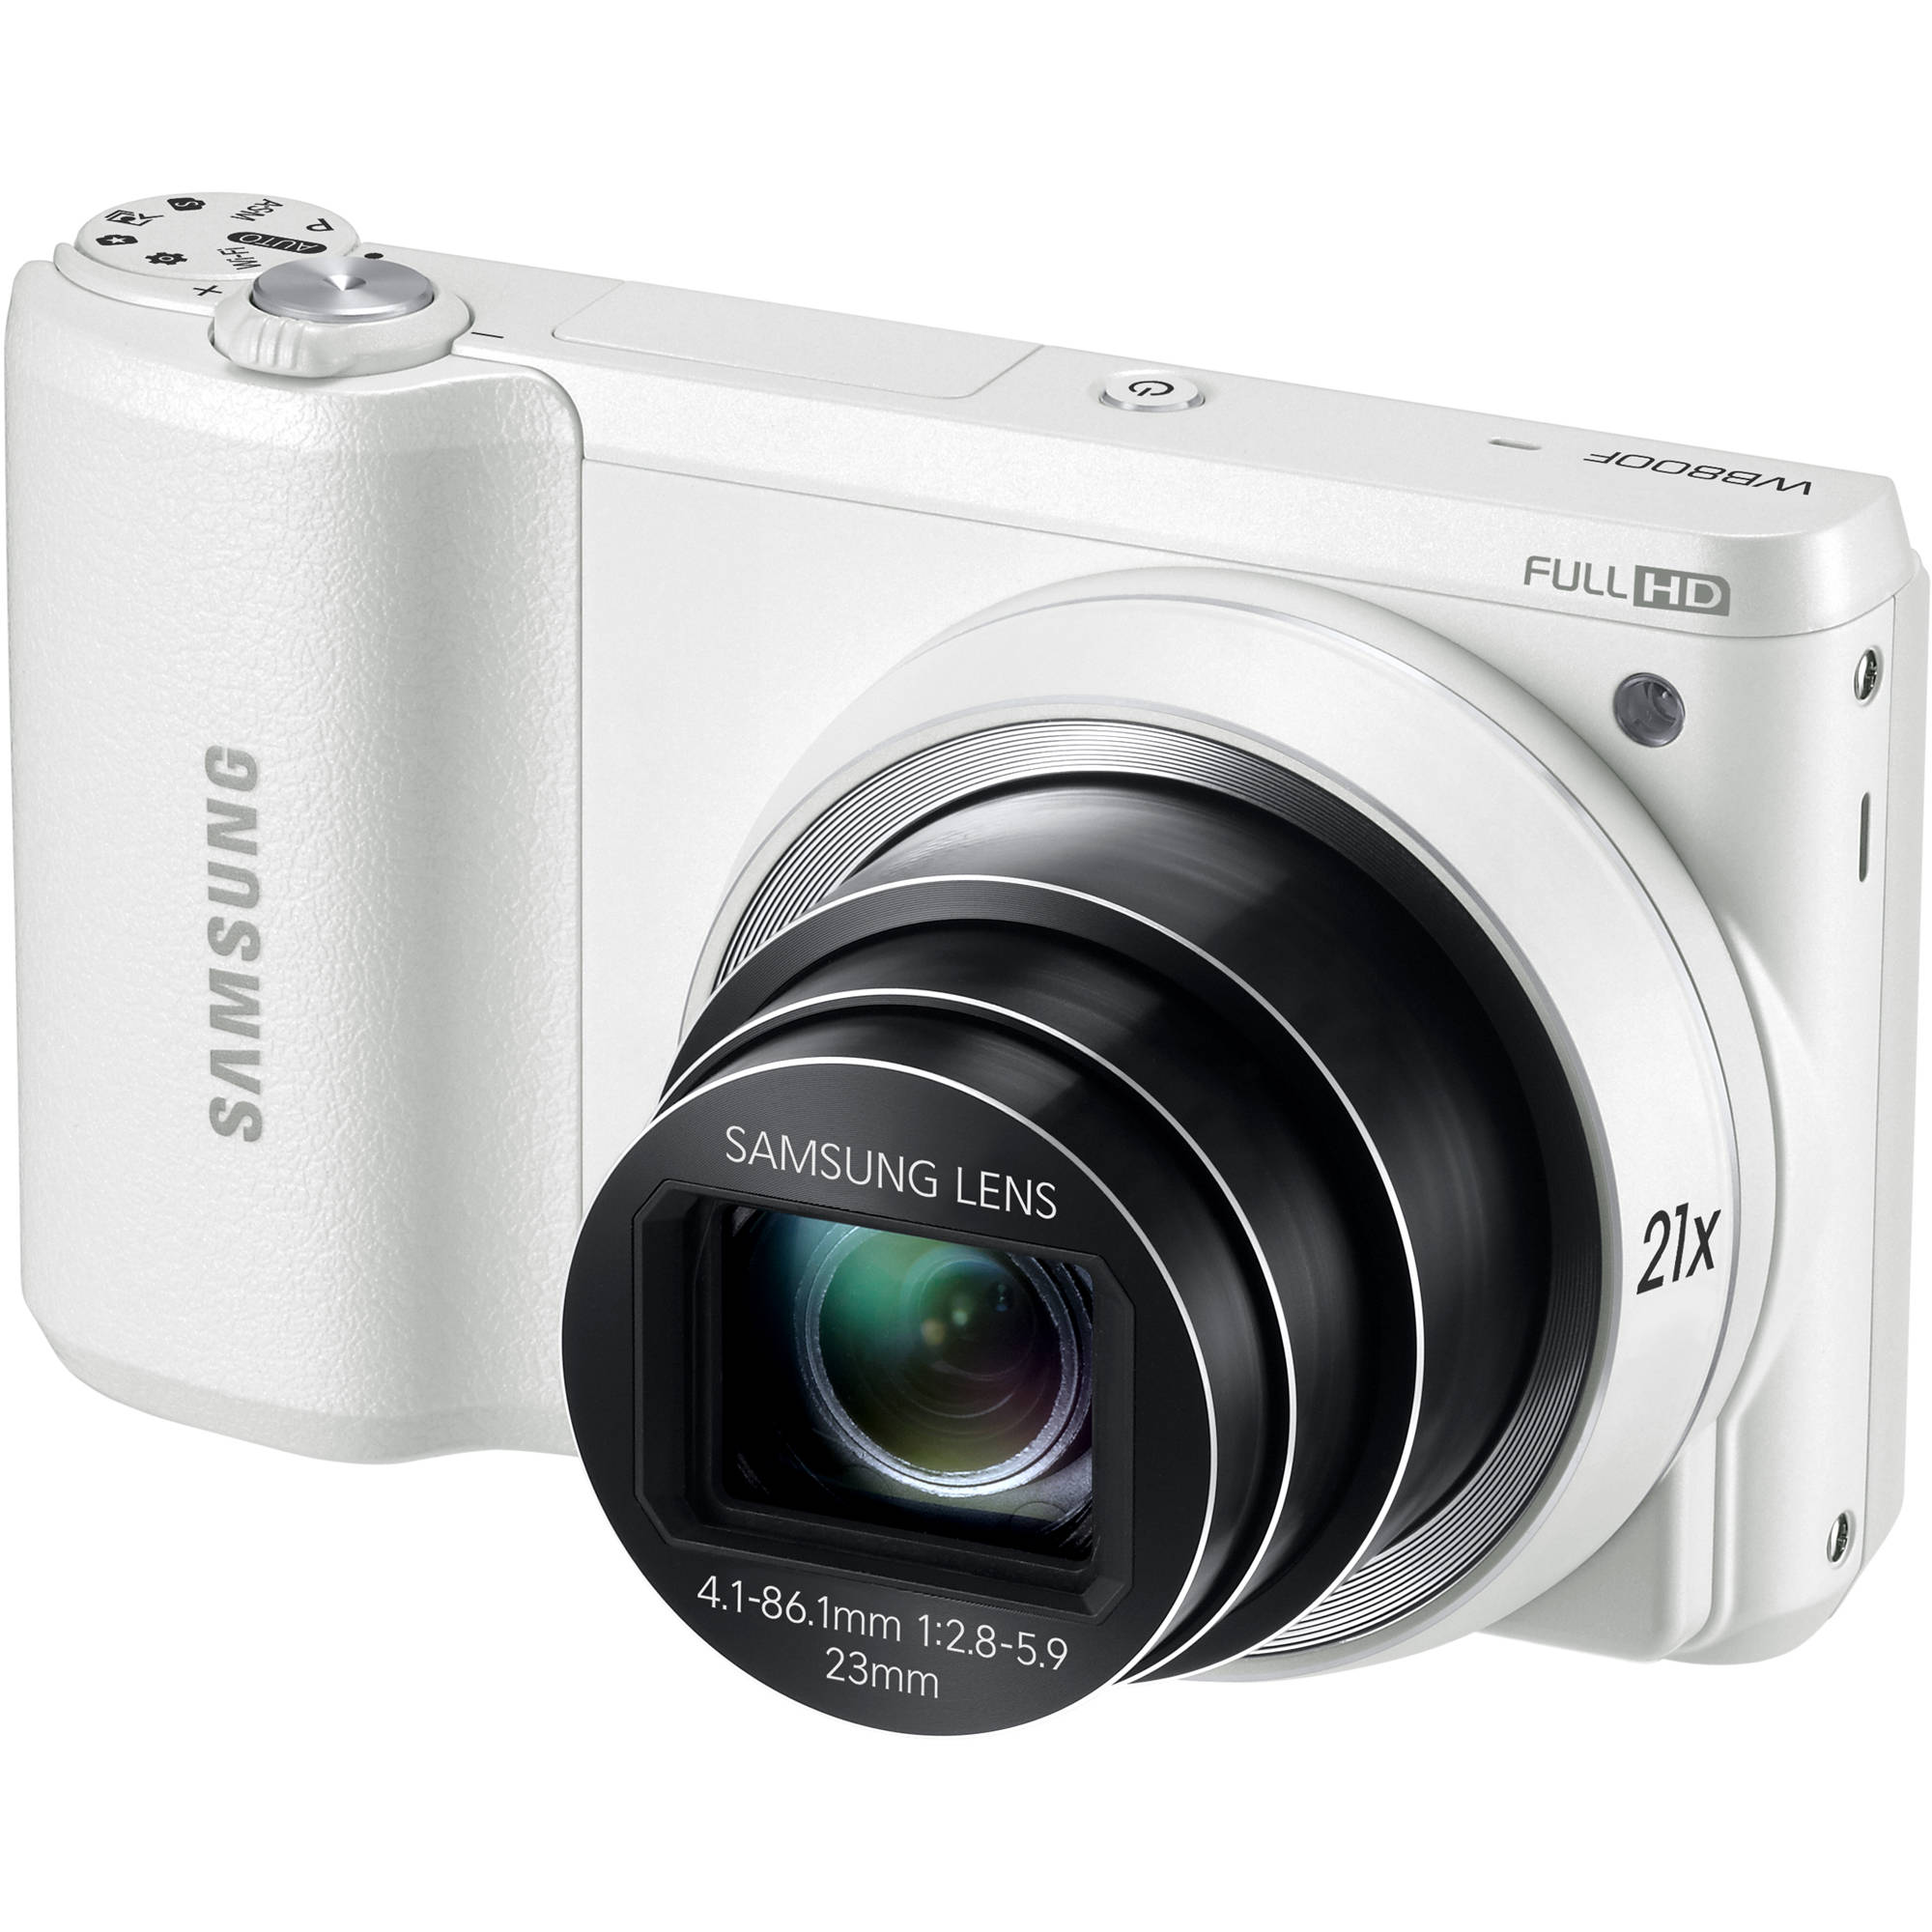 Samsung WB800F Camera Drivers